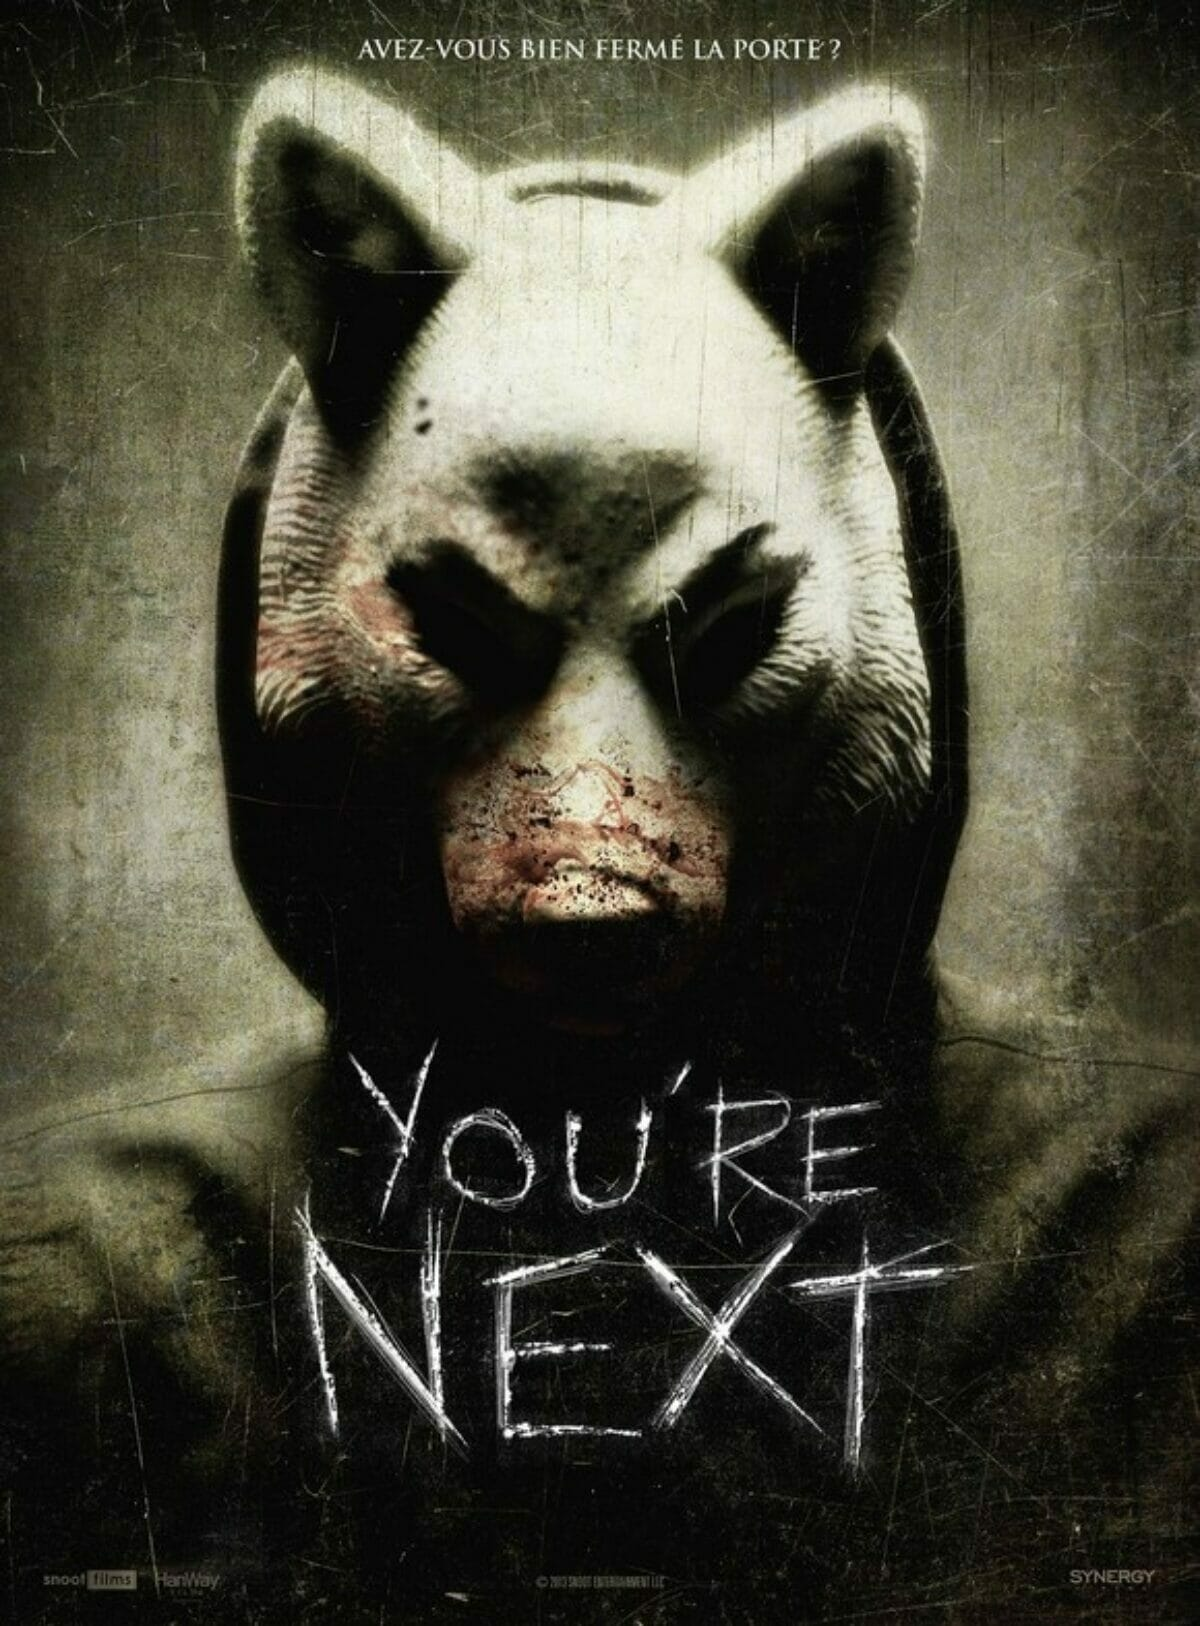 Youre-Next-Affiche-France